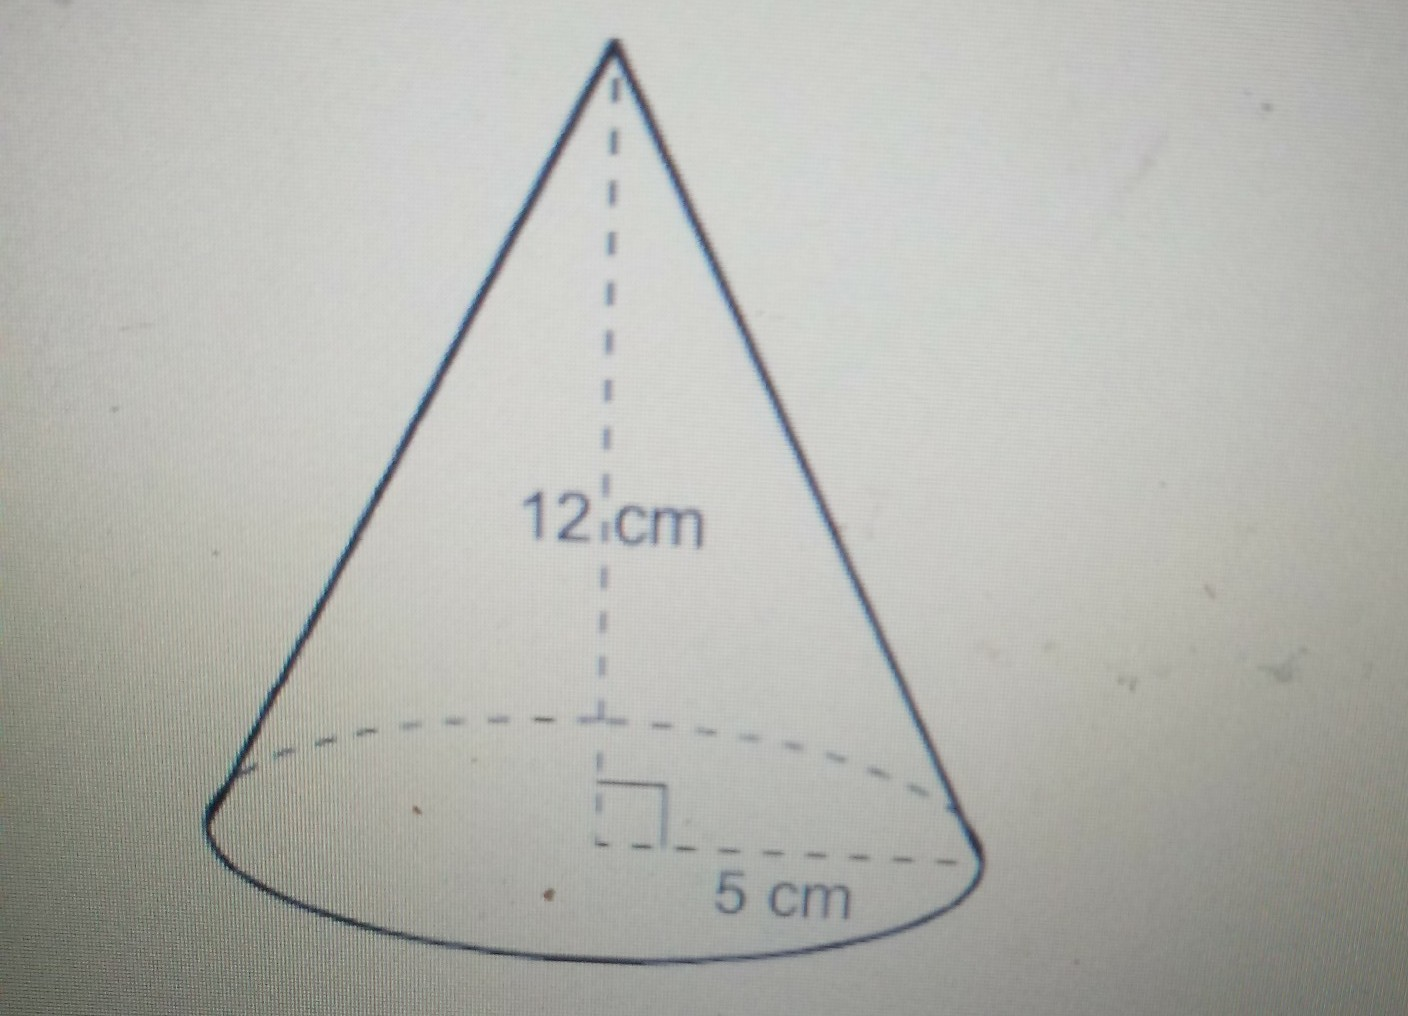 What Is The Total Surface Area Of The Cone